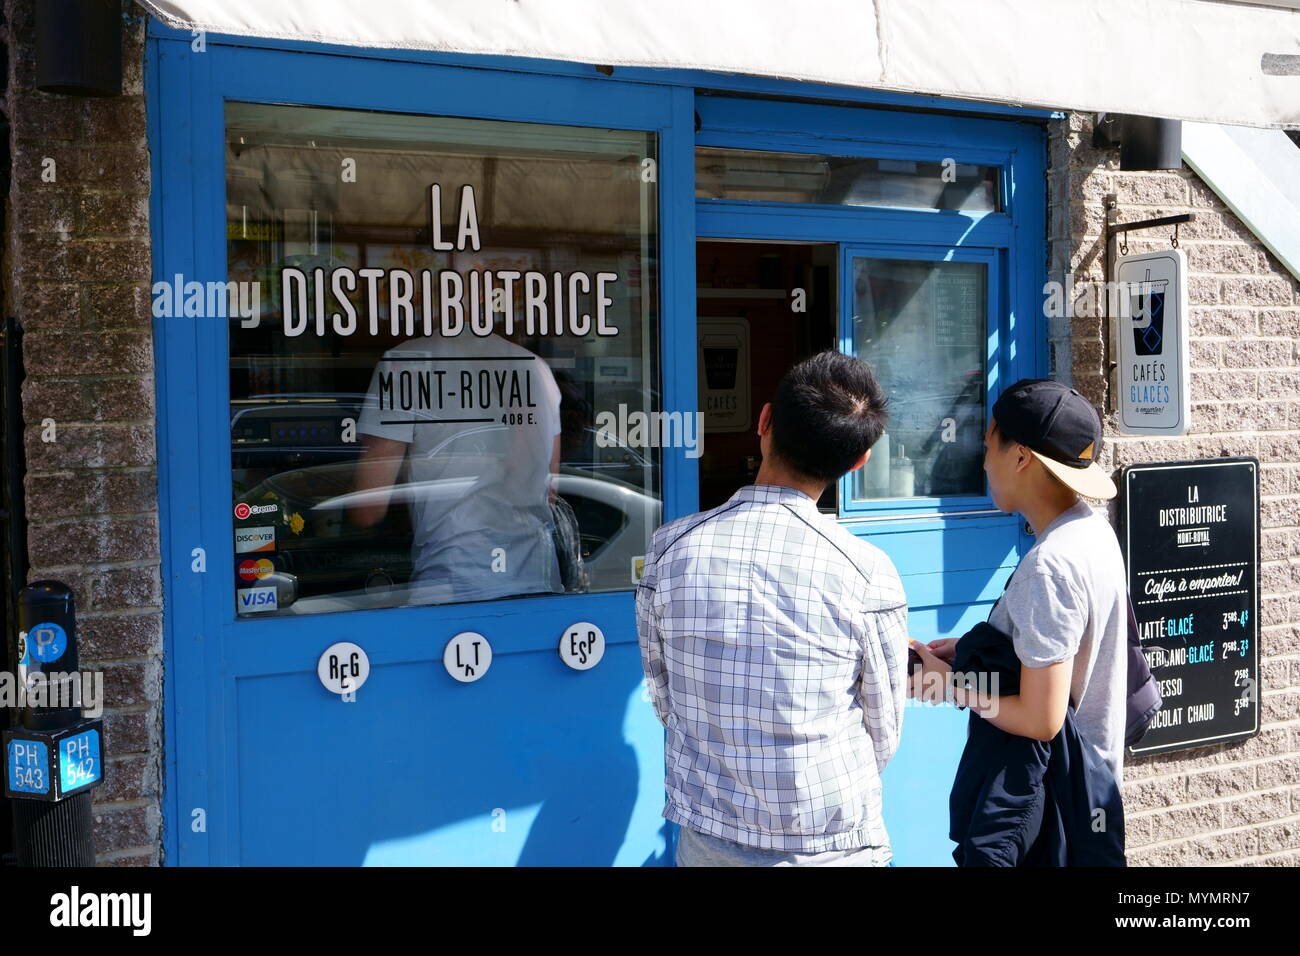 Montréal,QC / Canada - Mai 6th, 2018 : 'La distributrice', le plus petit café expresso dans le monde. Photo Stock